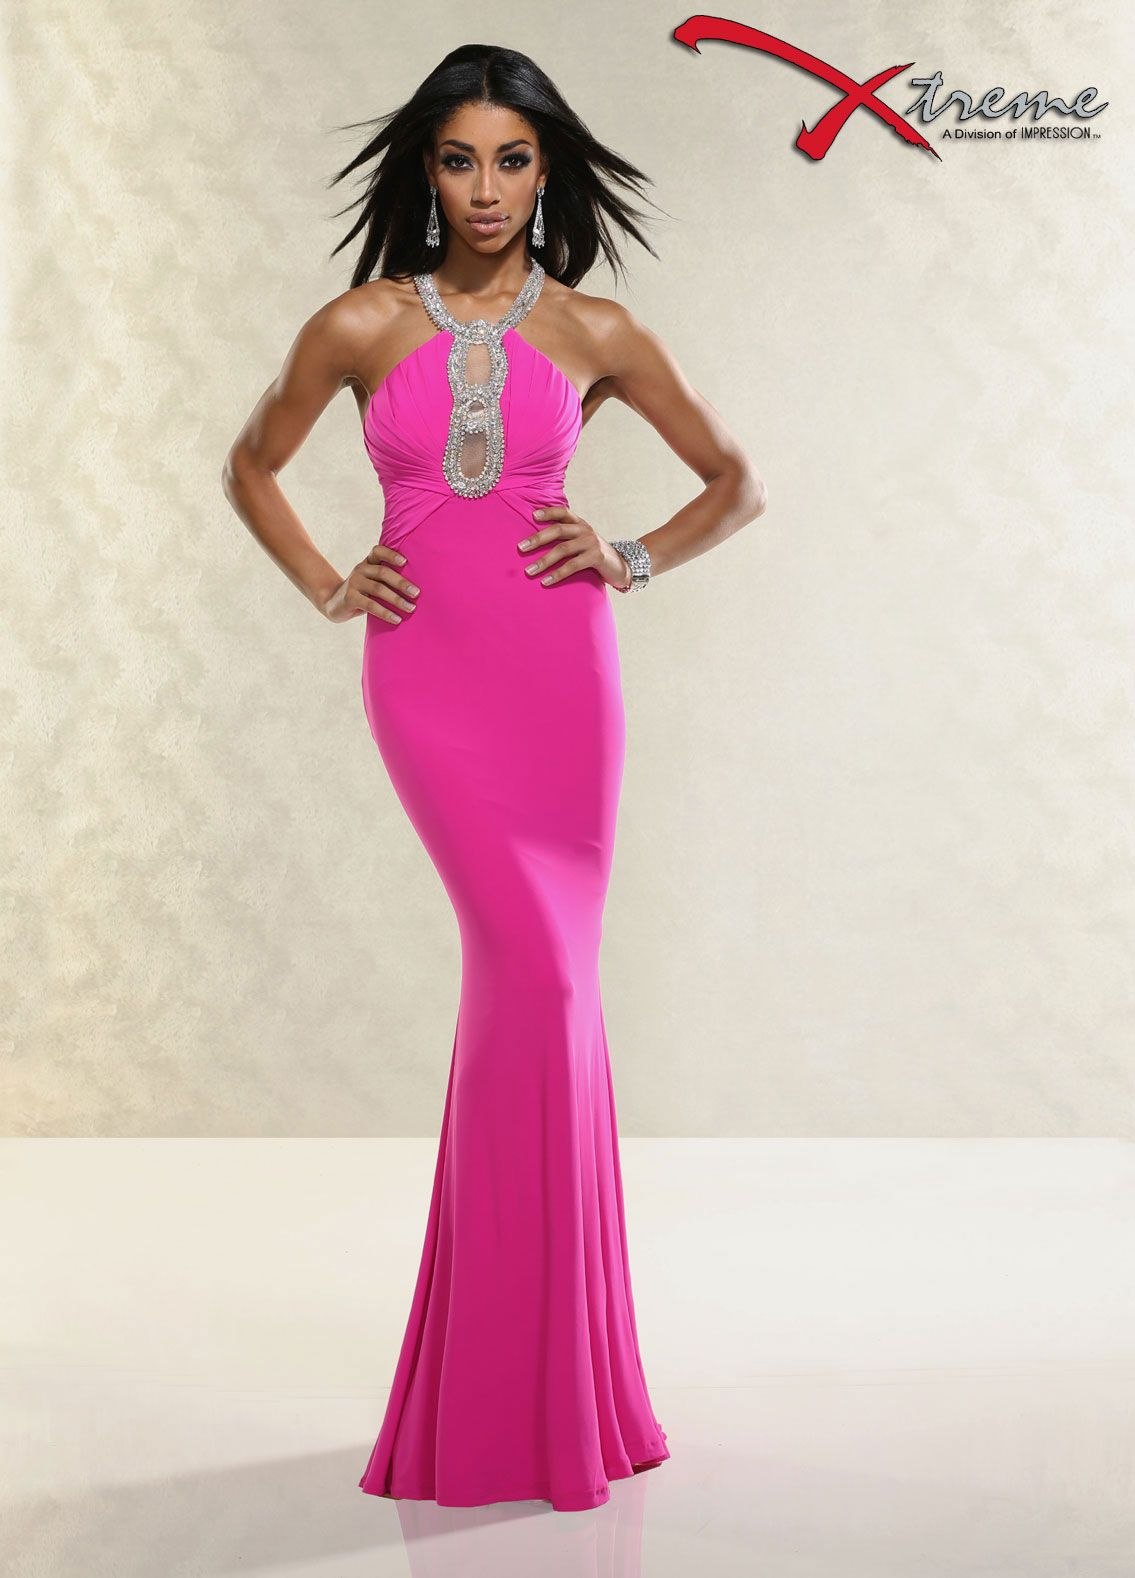 Xtreme prom dress, pageant dress, formal gown, evening gown ...